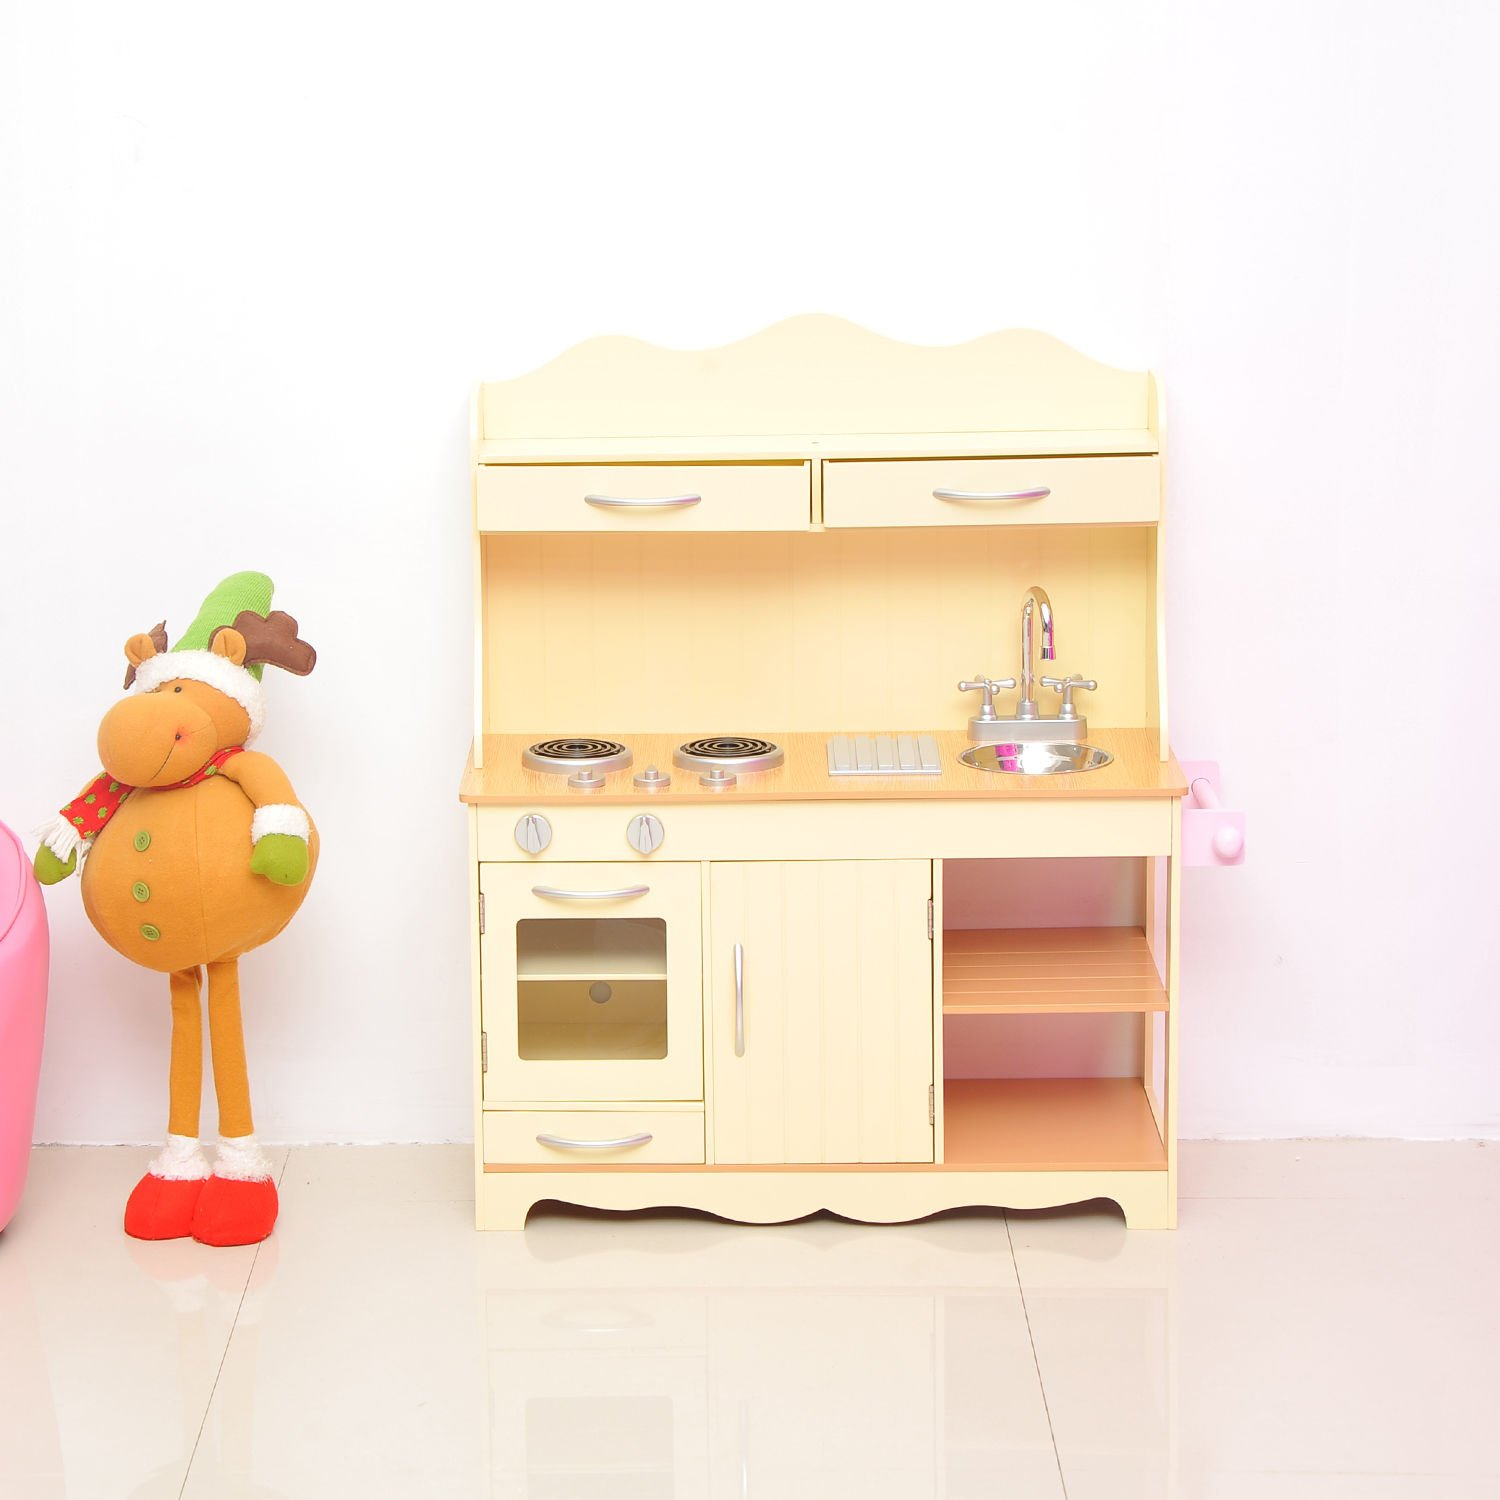 a26c637e0628 HOMCOM Large Wooden Kids Kitchen Children's Pretend Role Play Set Cooking  Toys Cooker Imagination Early Learning: Amazon.co.uk: Garden & Outdoors